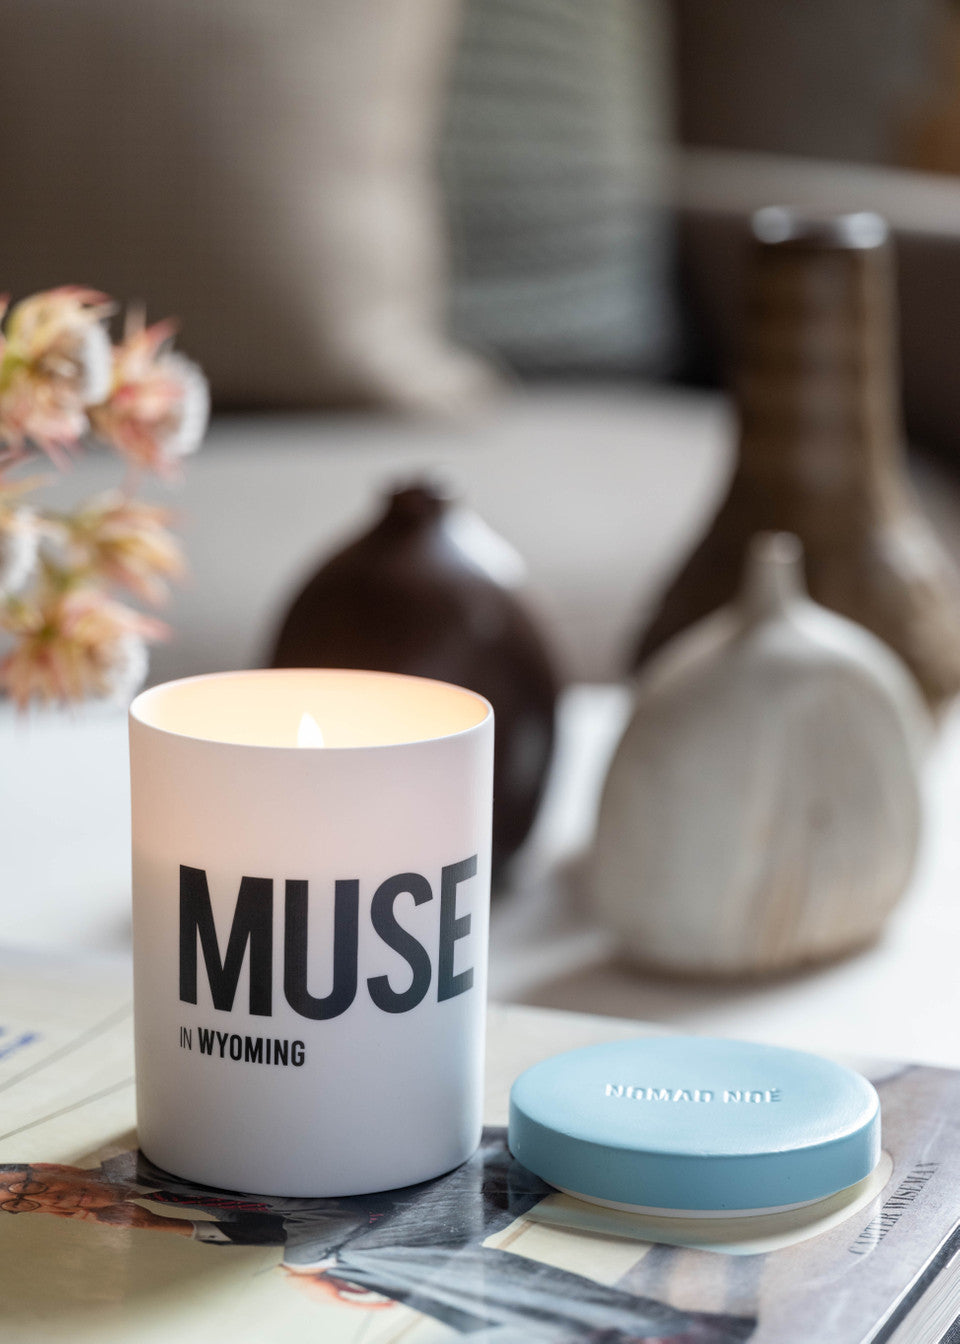 Muse candle in bathroom